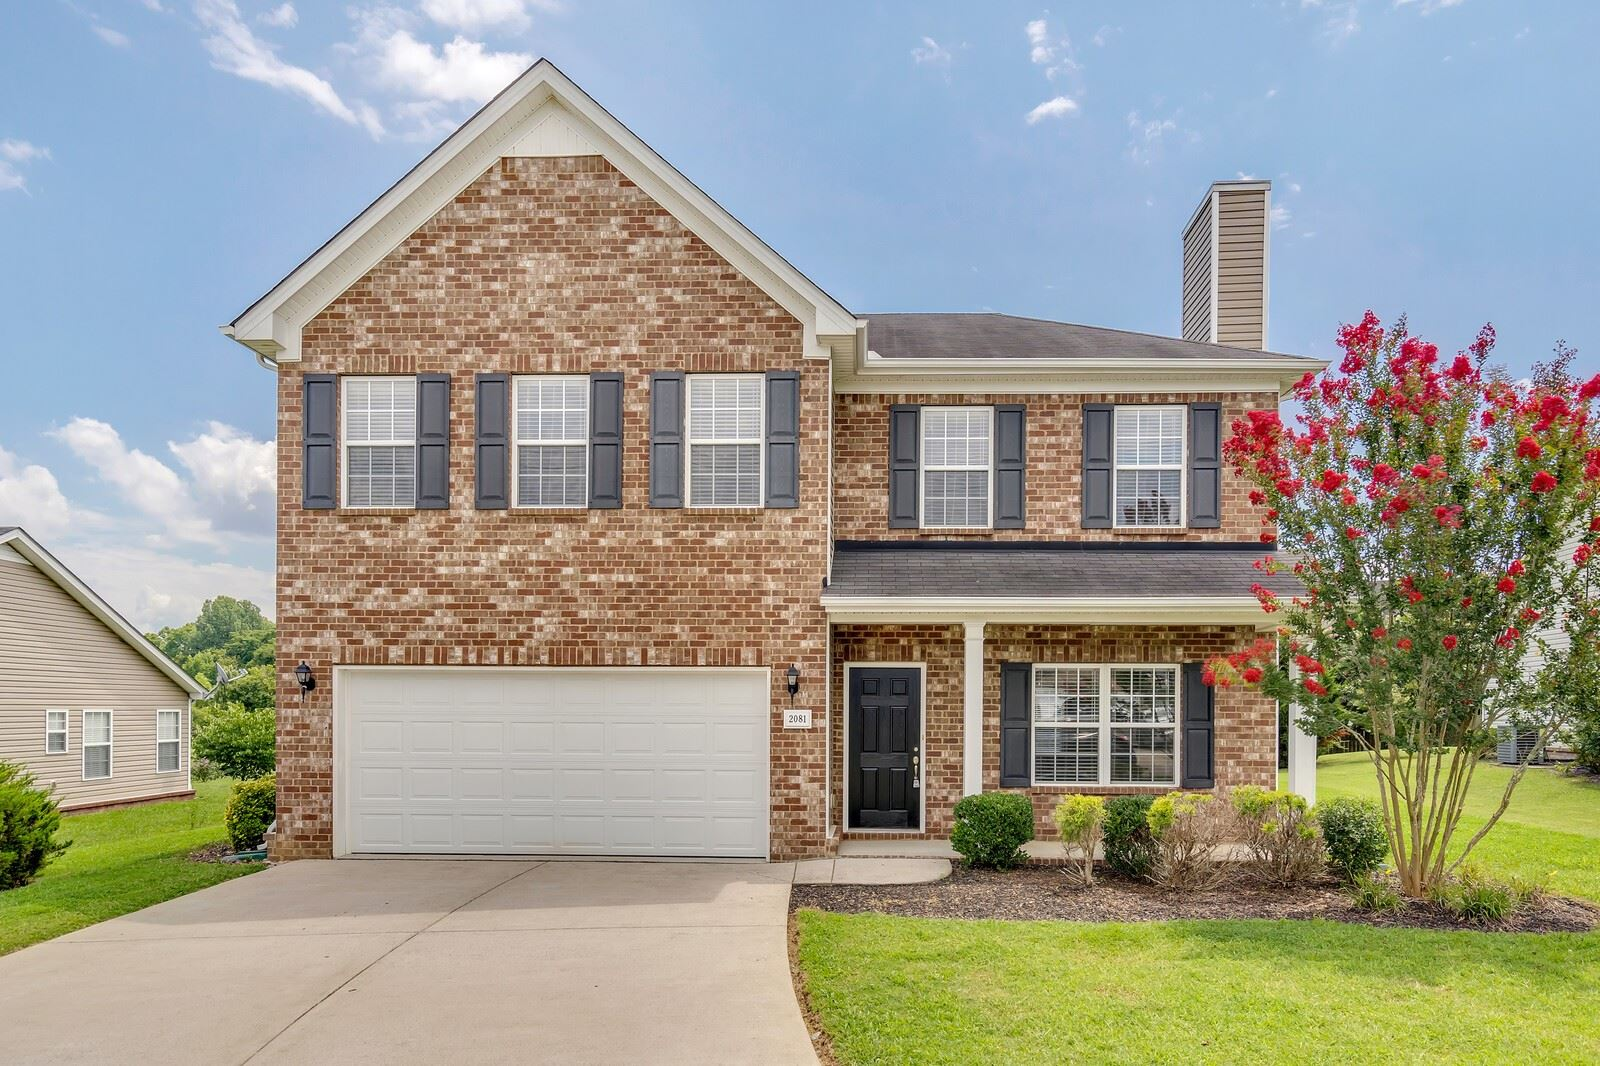 2081 Longhunter Chase Dr, Spring Hill, TN 37174 - MLS#: 2178734